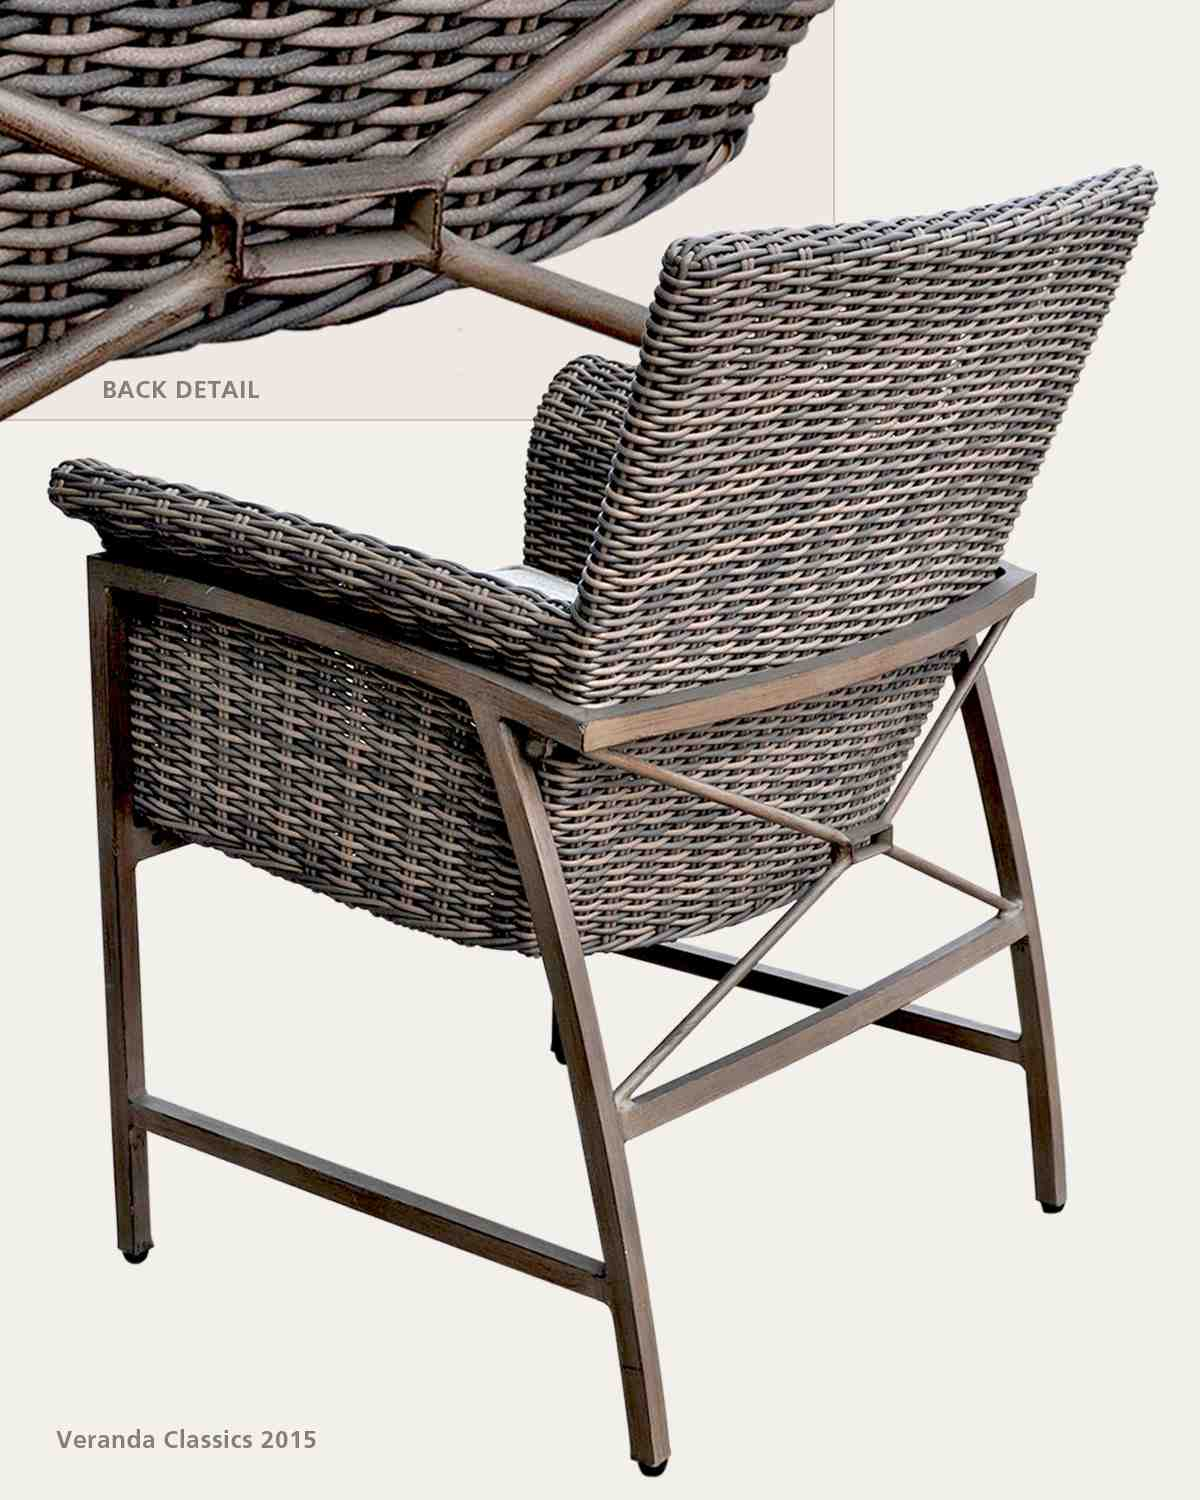 Merveilleux The Rio Dining Chair Details Finely Crafted Mixed Media And Exposed  Aluminum. Frame